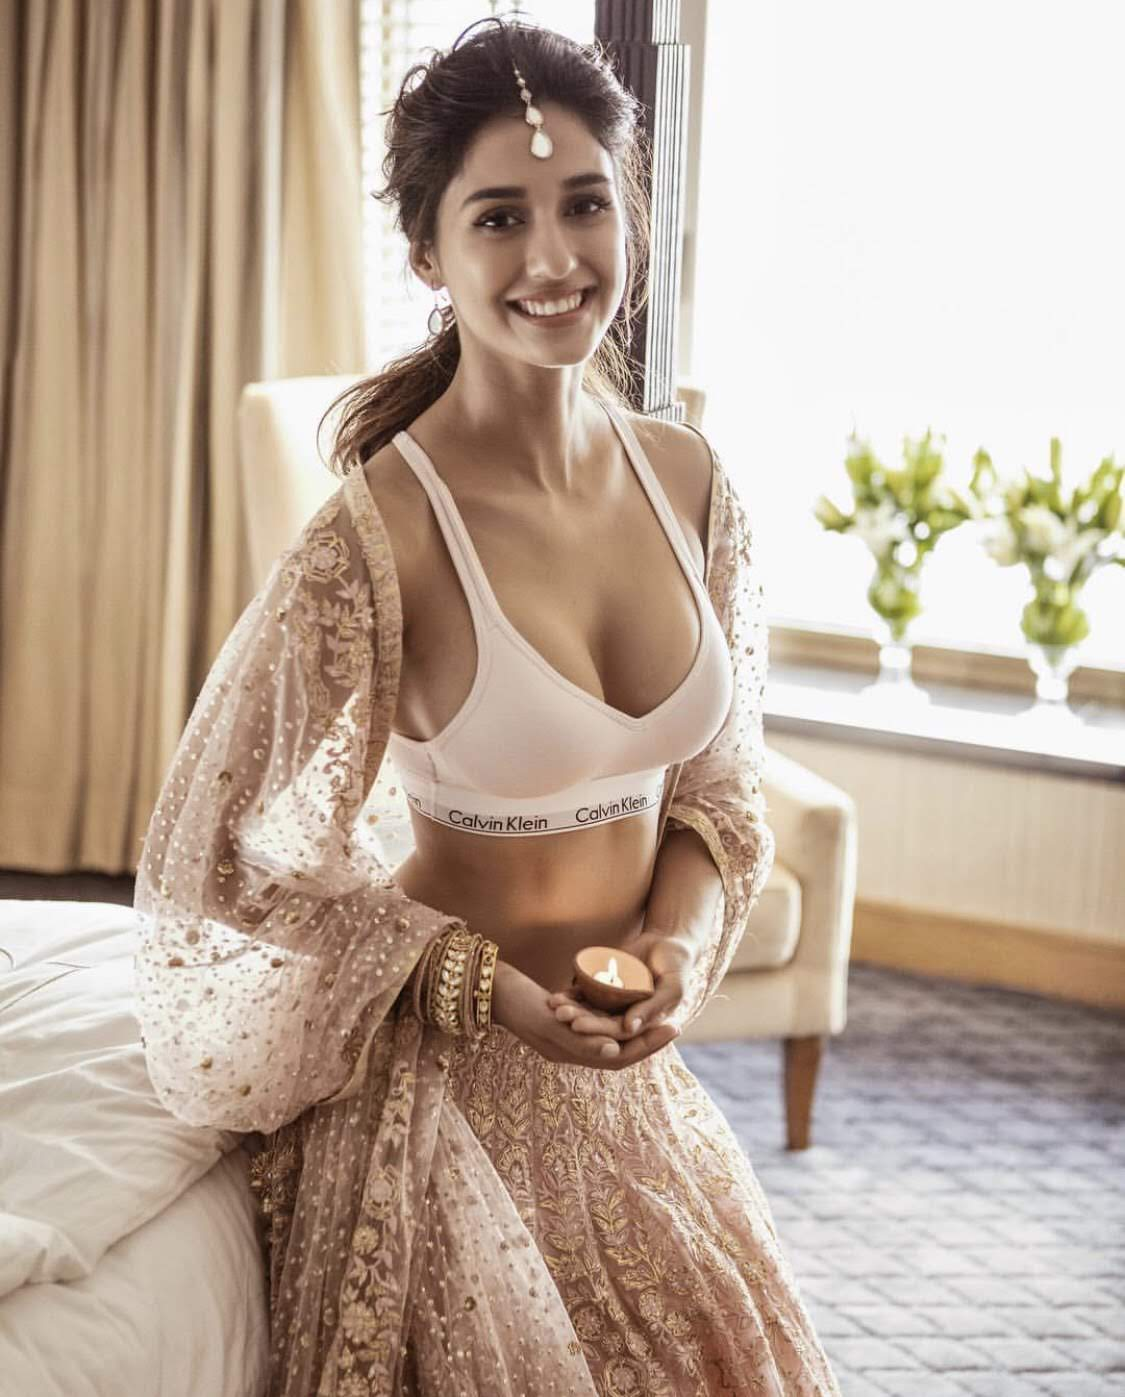 disha-patani-photo-53